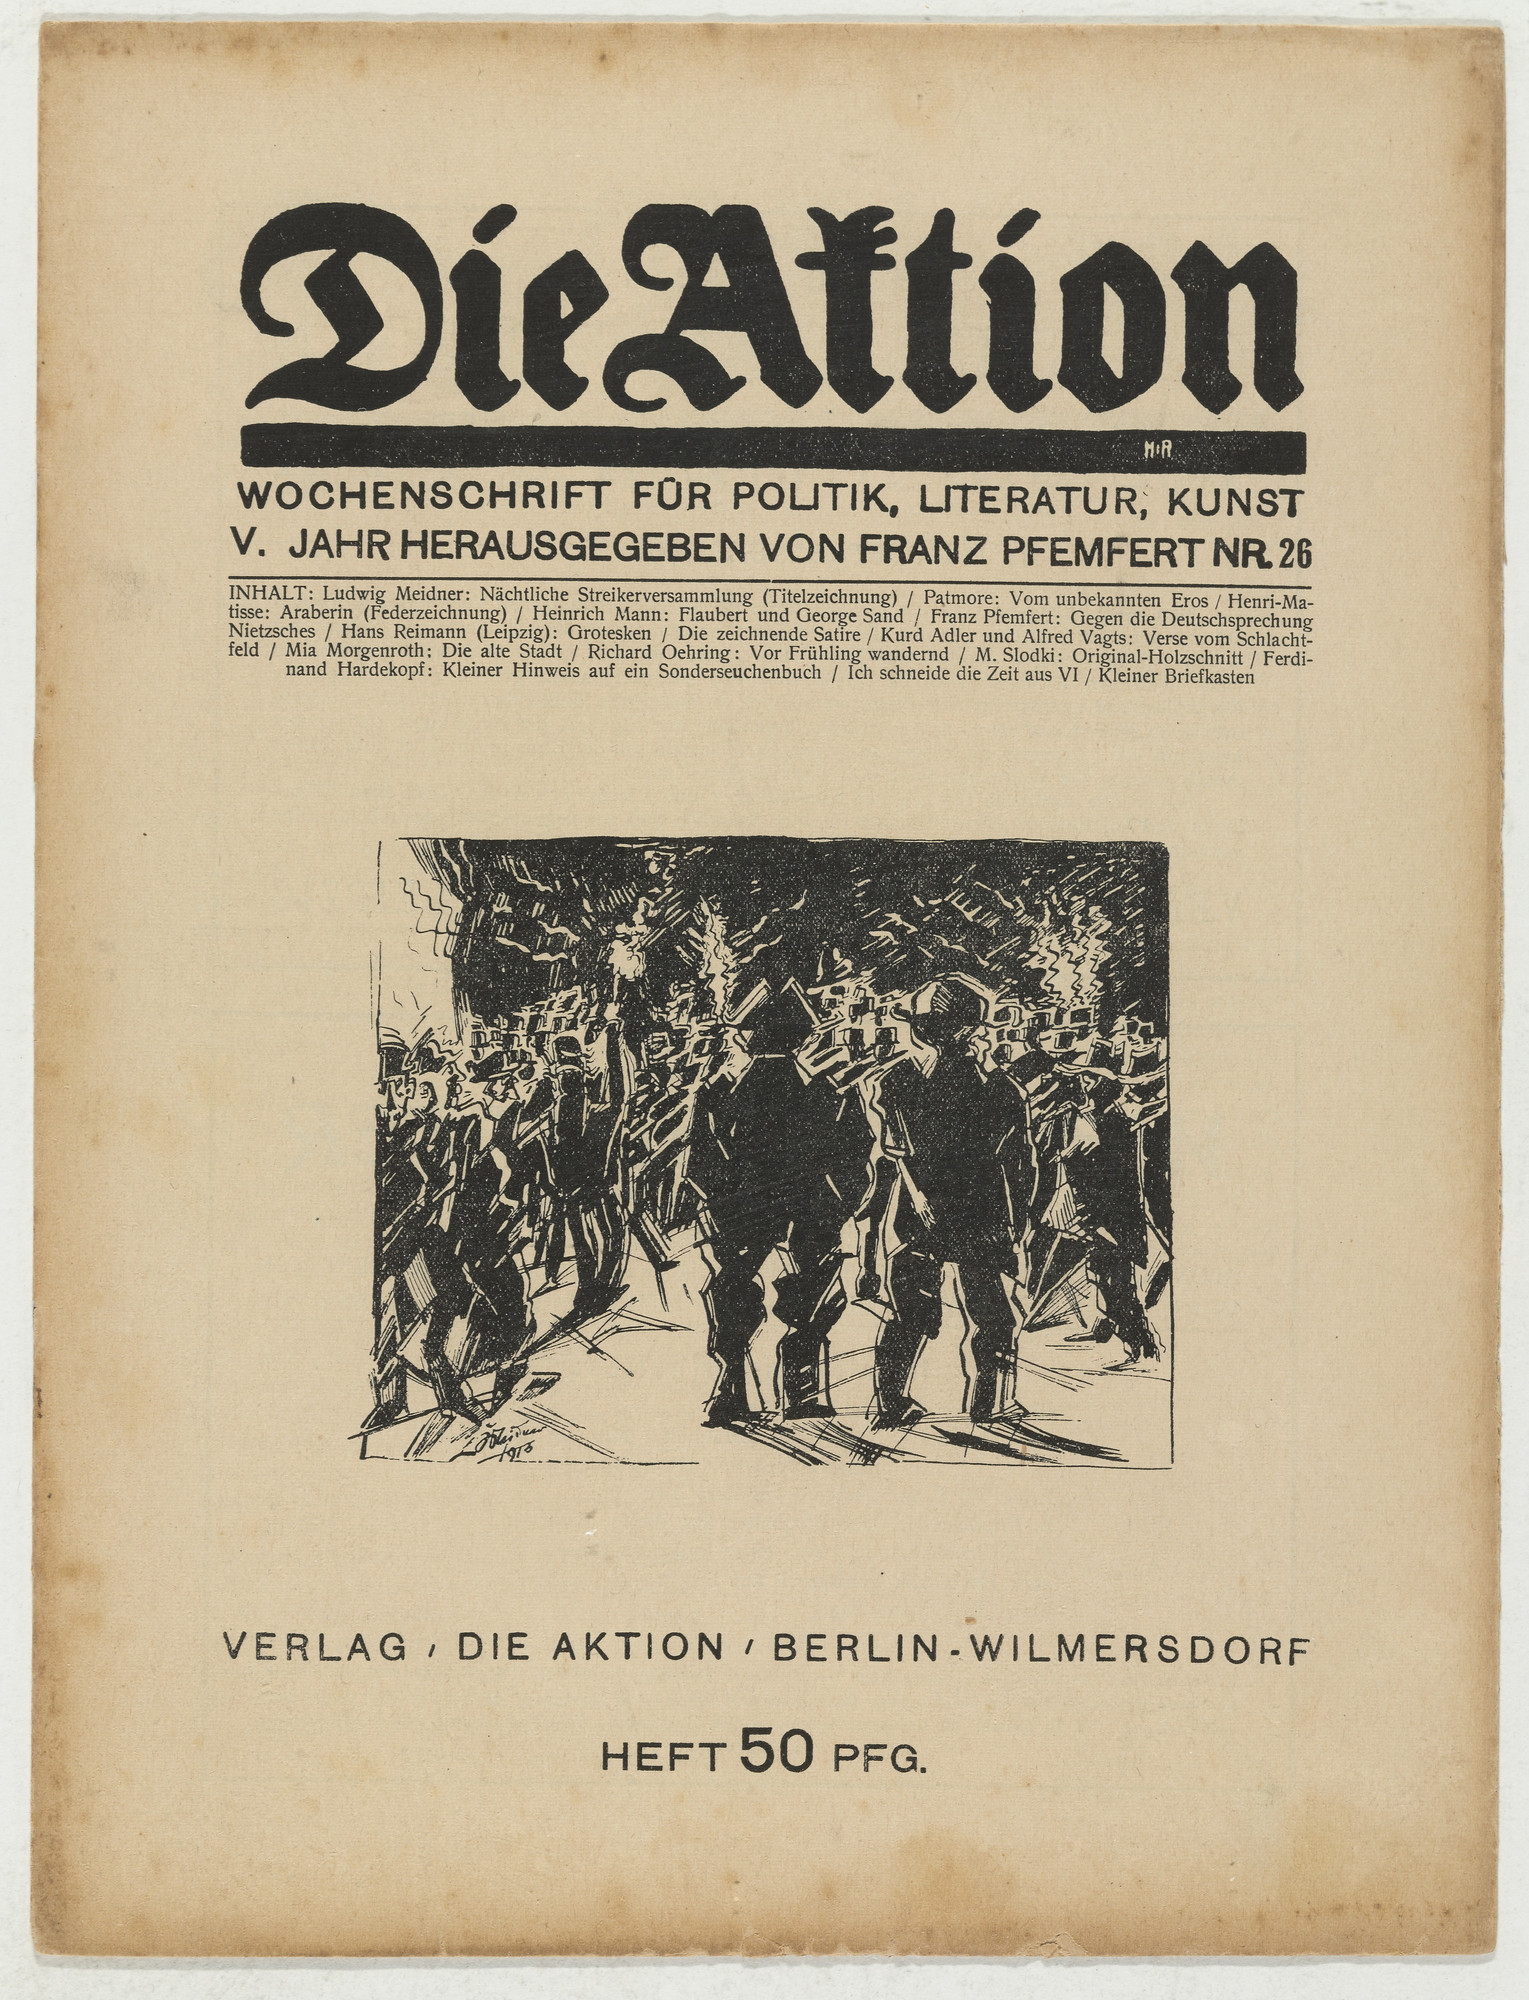 Marcel Slodki. Die Aktion, vol. 5, no. 26. June 26, 1915